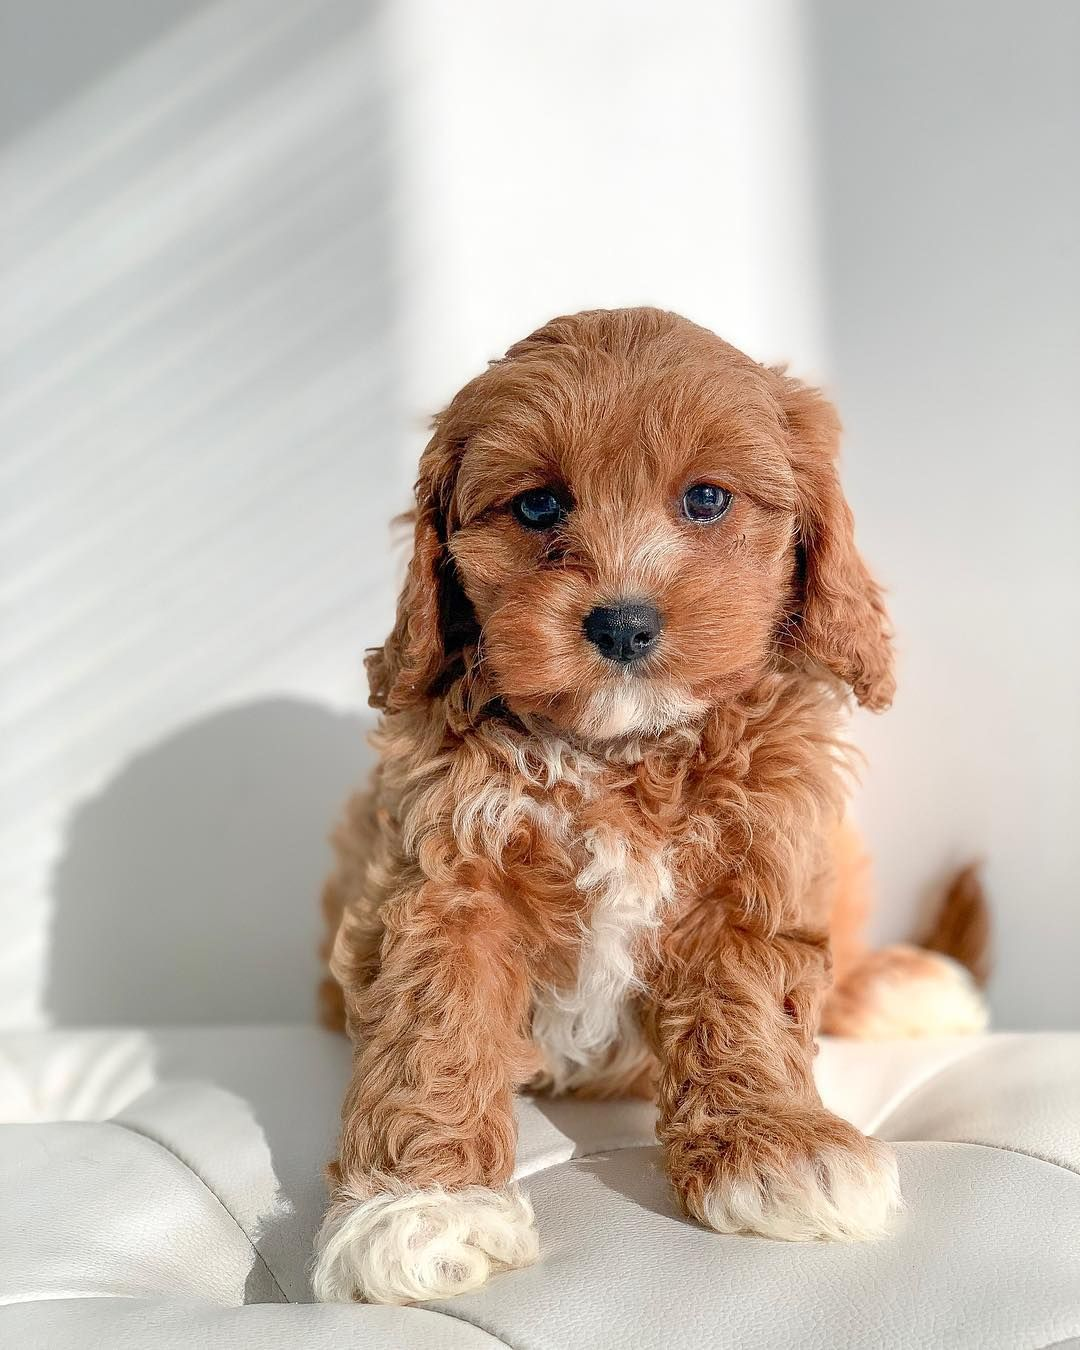 Cute Cavoodle Puppy Cute Dog Pictures Cute Dogs And Puppies Cute Puppies